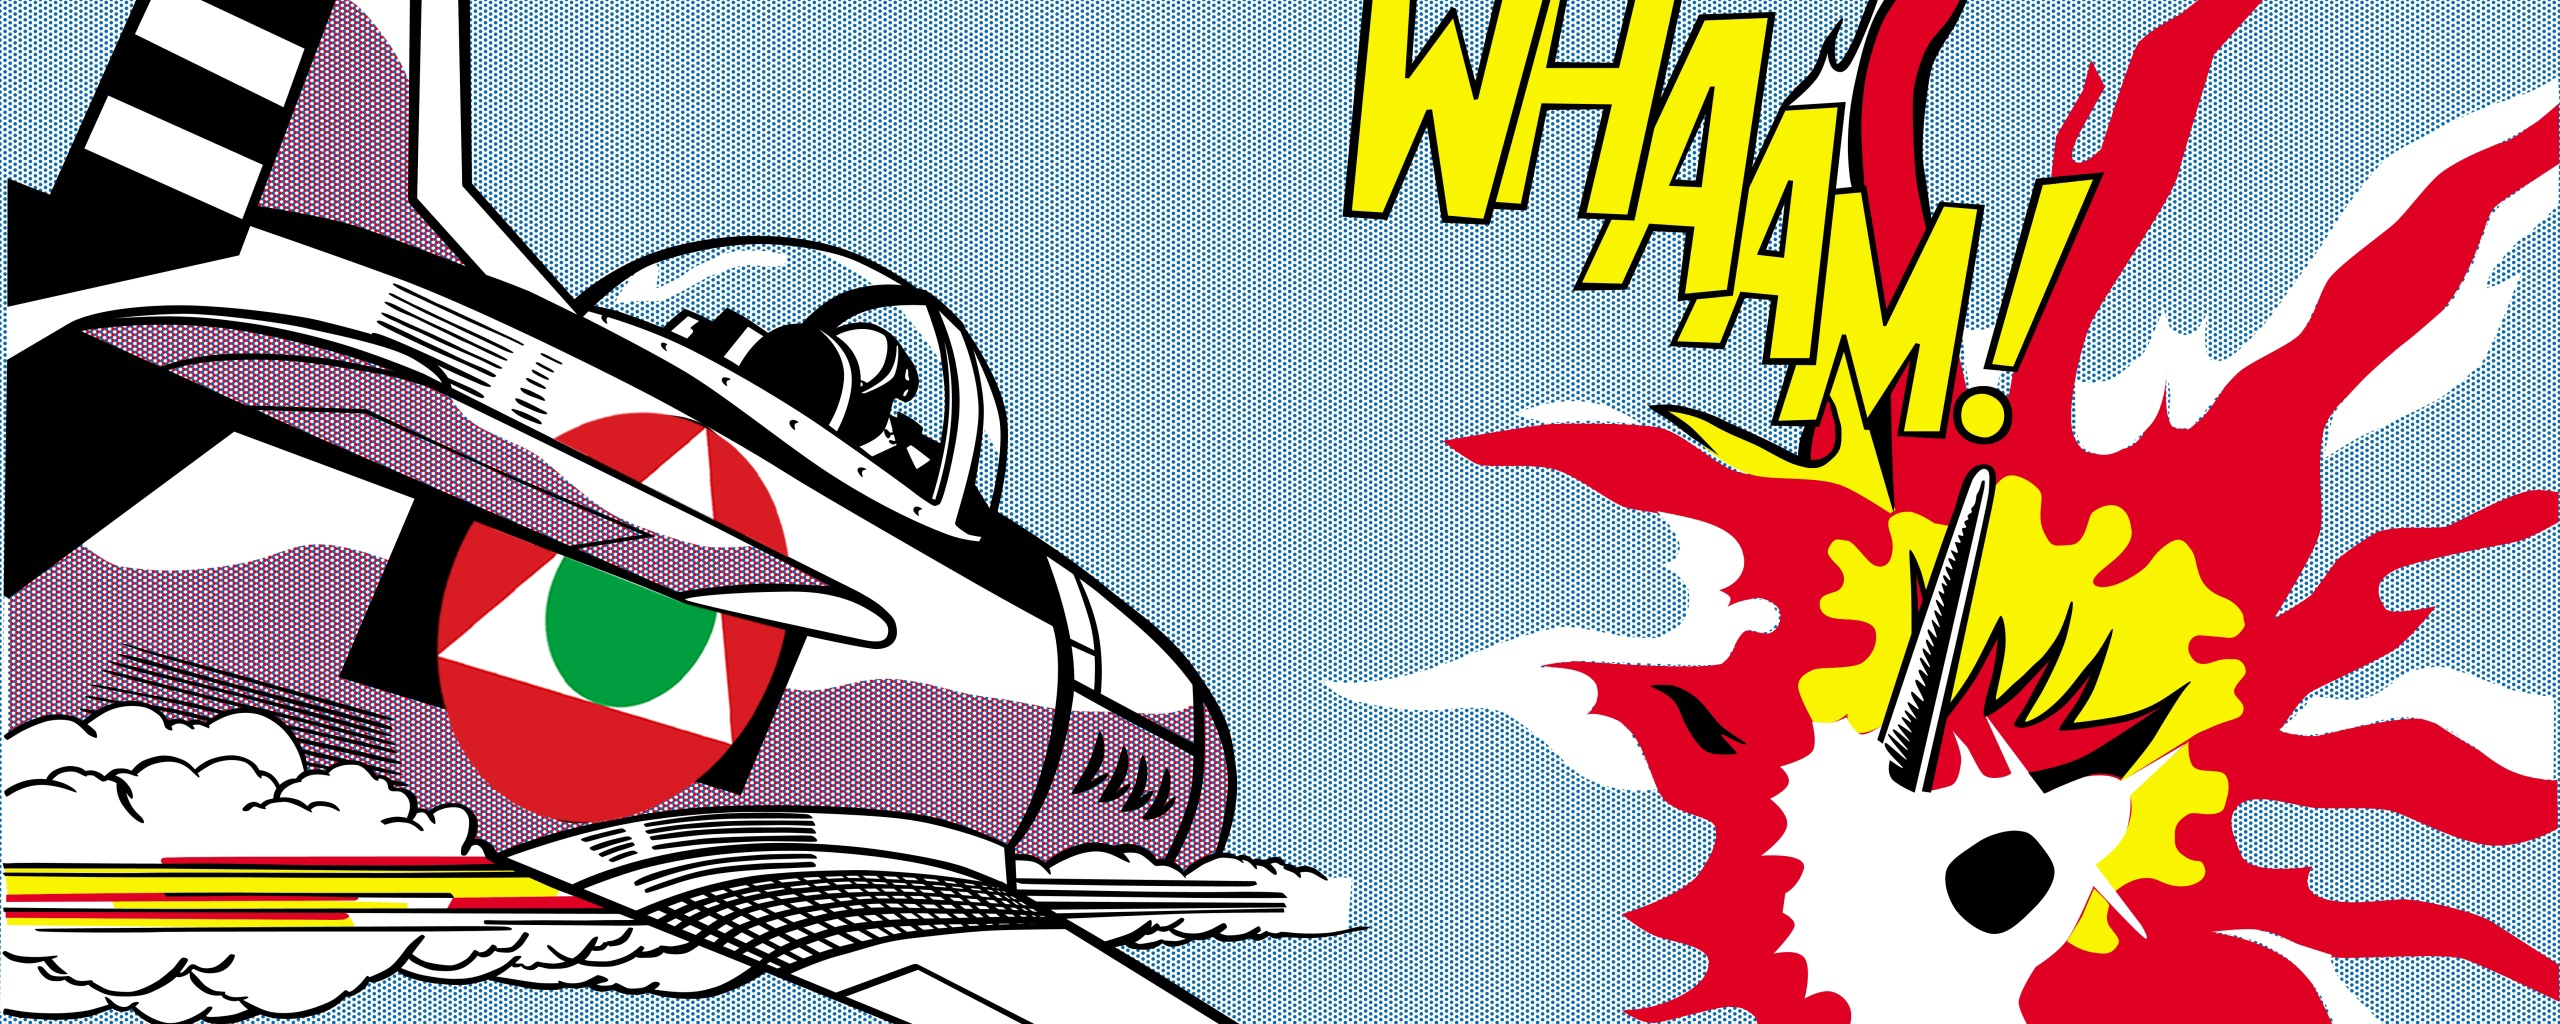 Whaam! (1963)Pop Artist Roy Lichtenstein Wallpaper And Throughout Pop Art Wallpaper For Walls (Image 20 of 20)